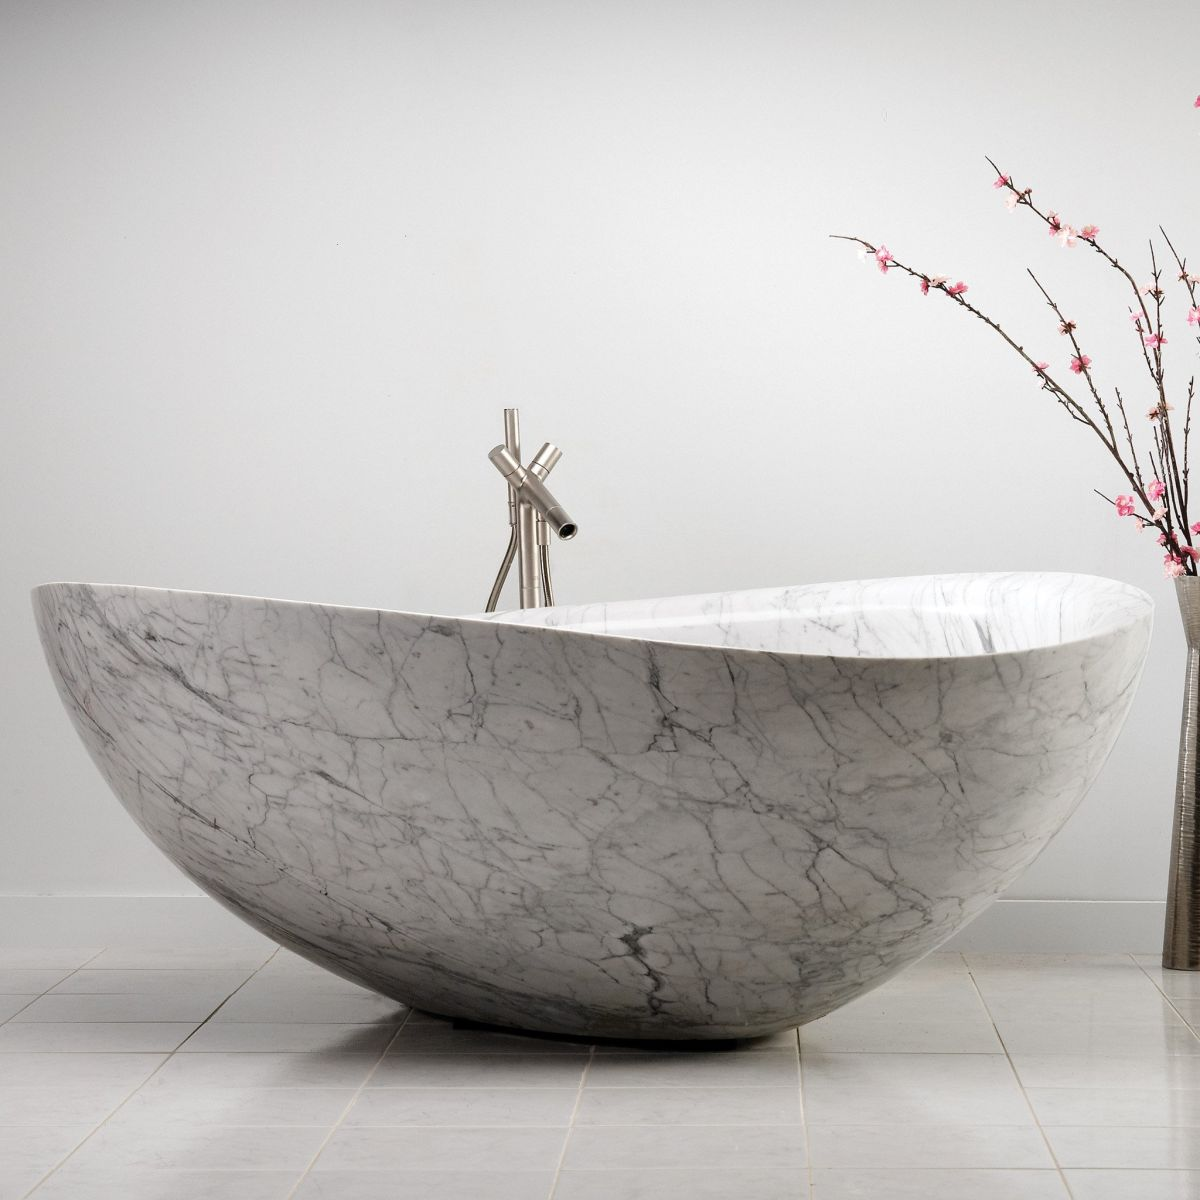 The Latest Designs That Turn Bathtubs Into Works Of Art